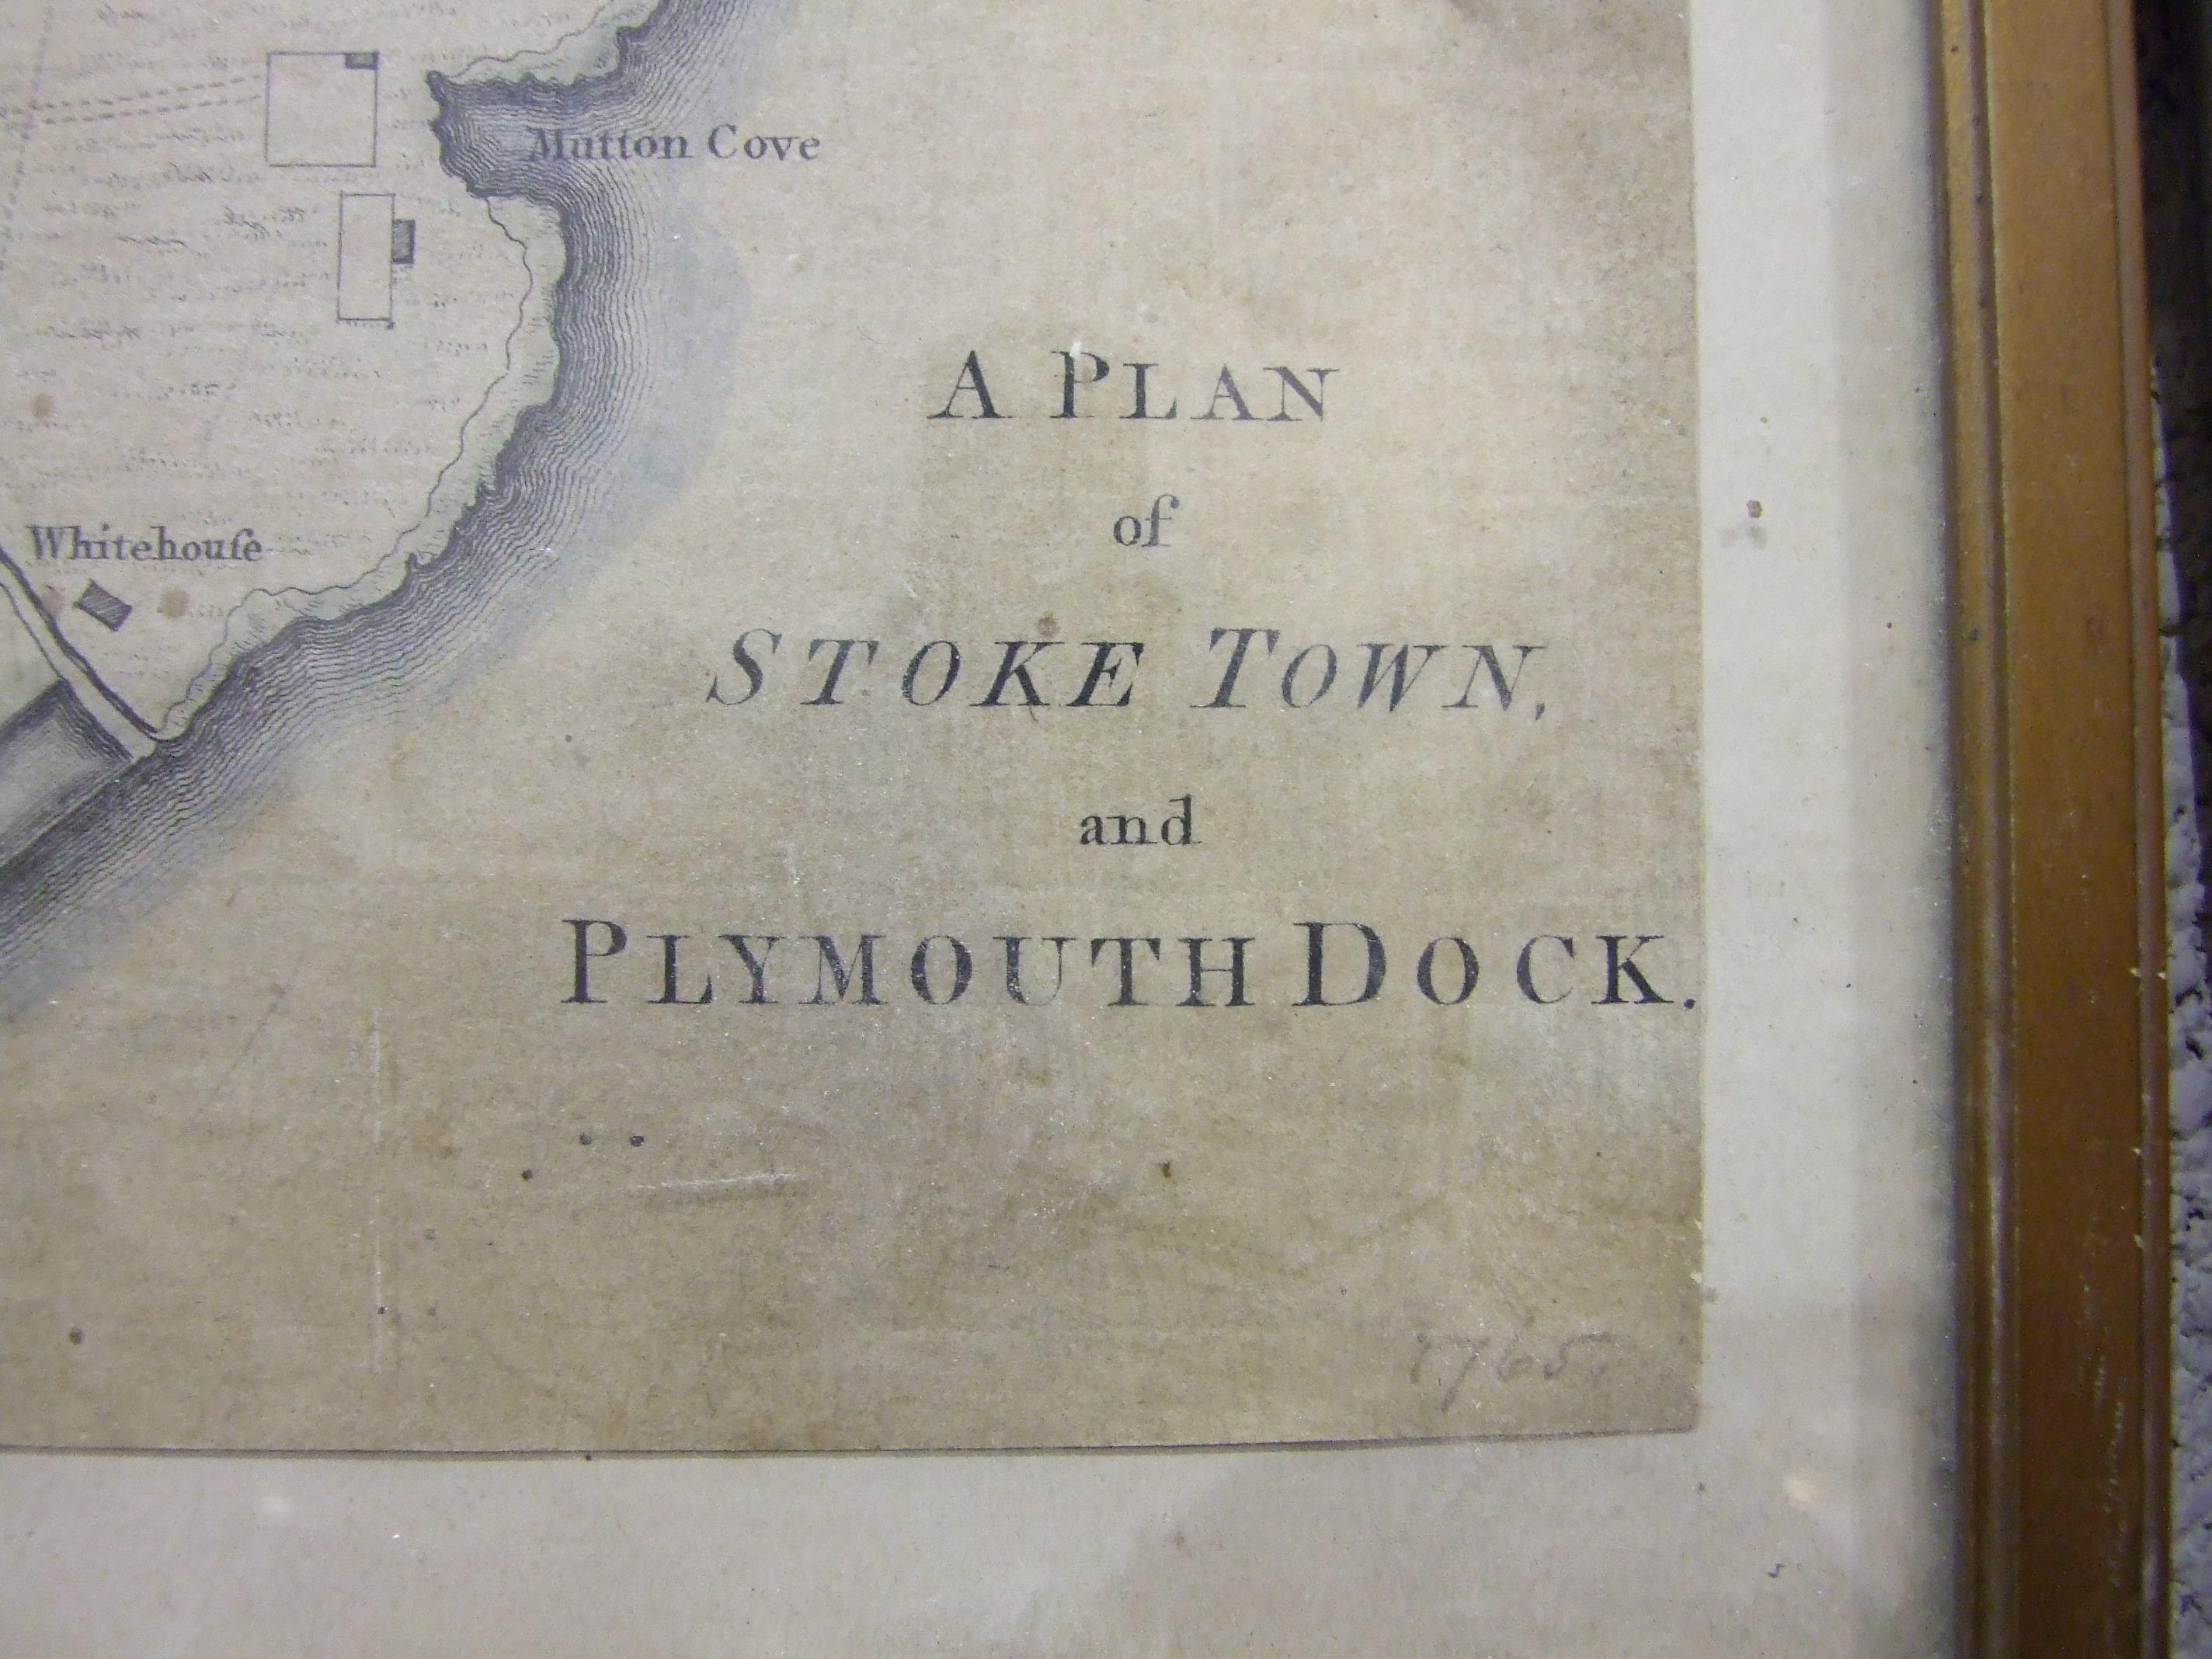 After Benjamin Donn, 'A plan of Stoke Town and Plymouth Dock', later hand-coloured, 26.5 x 37cm, - Image 2 of 3